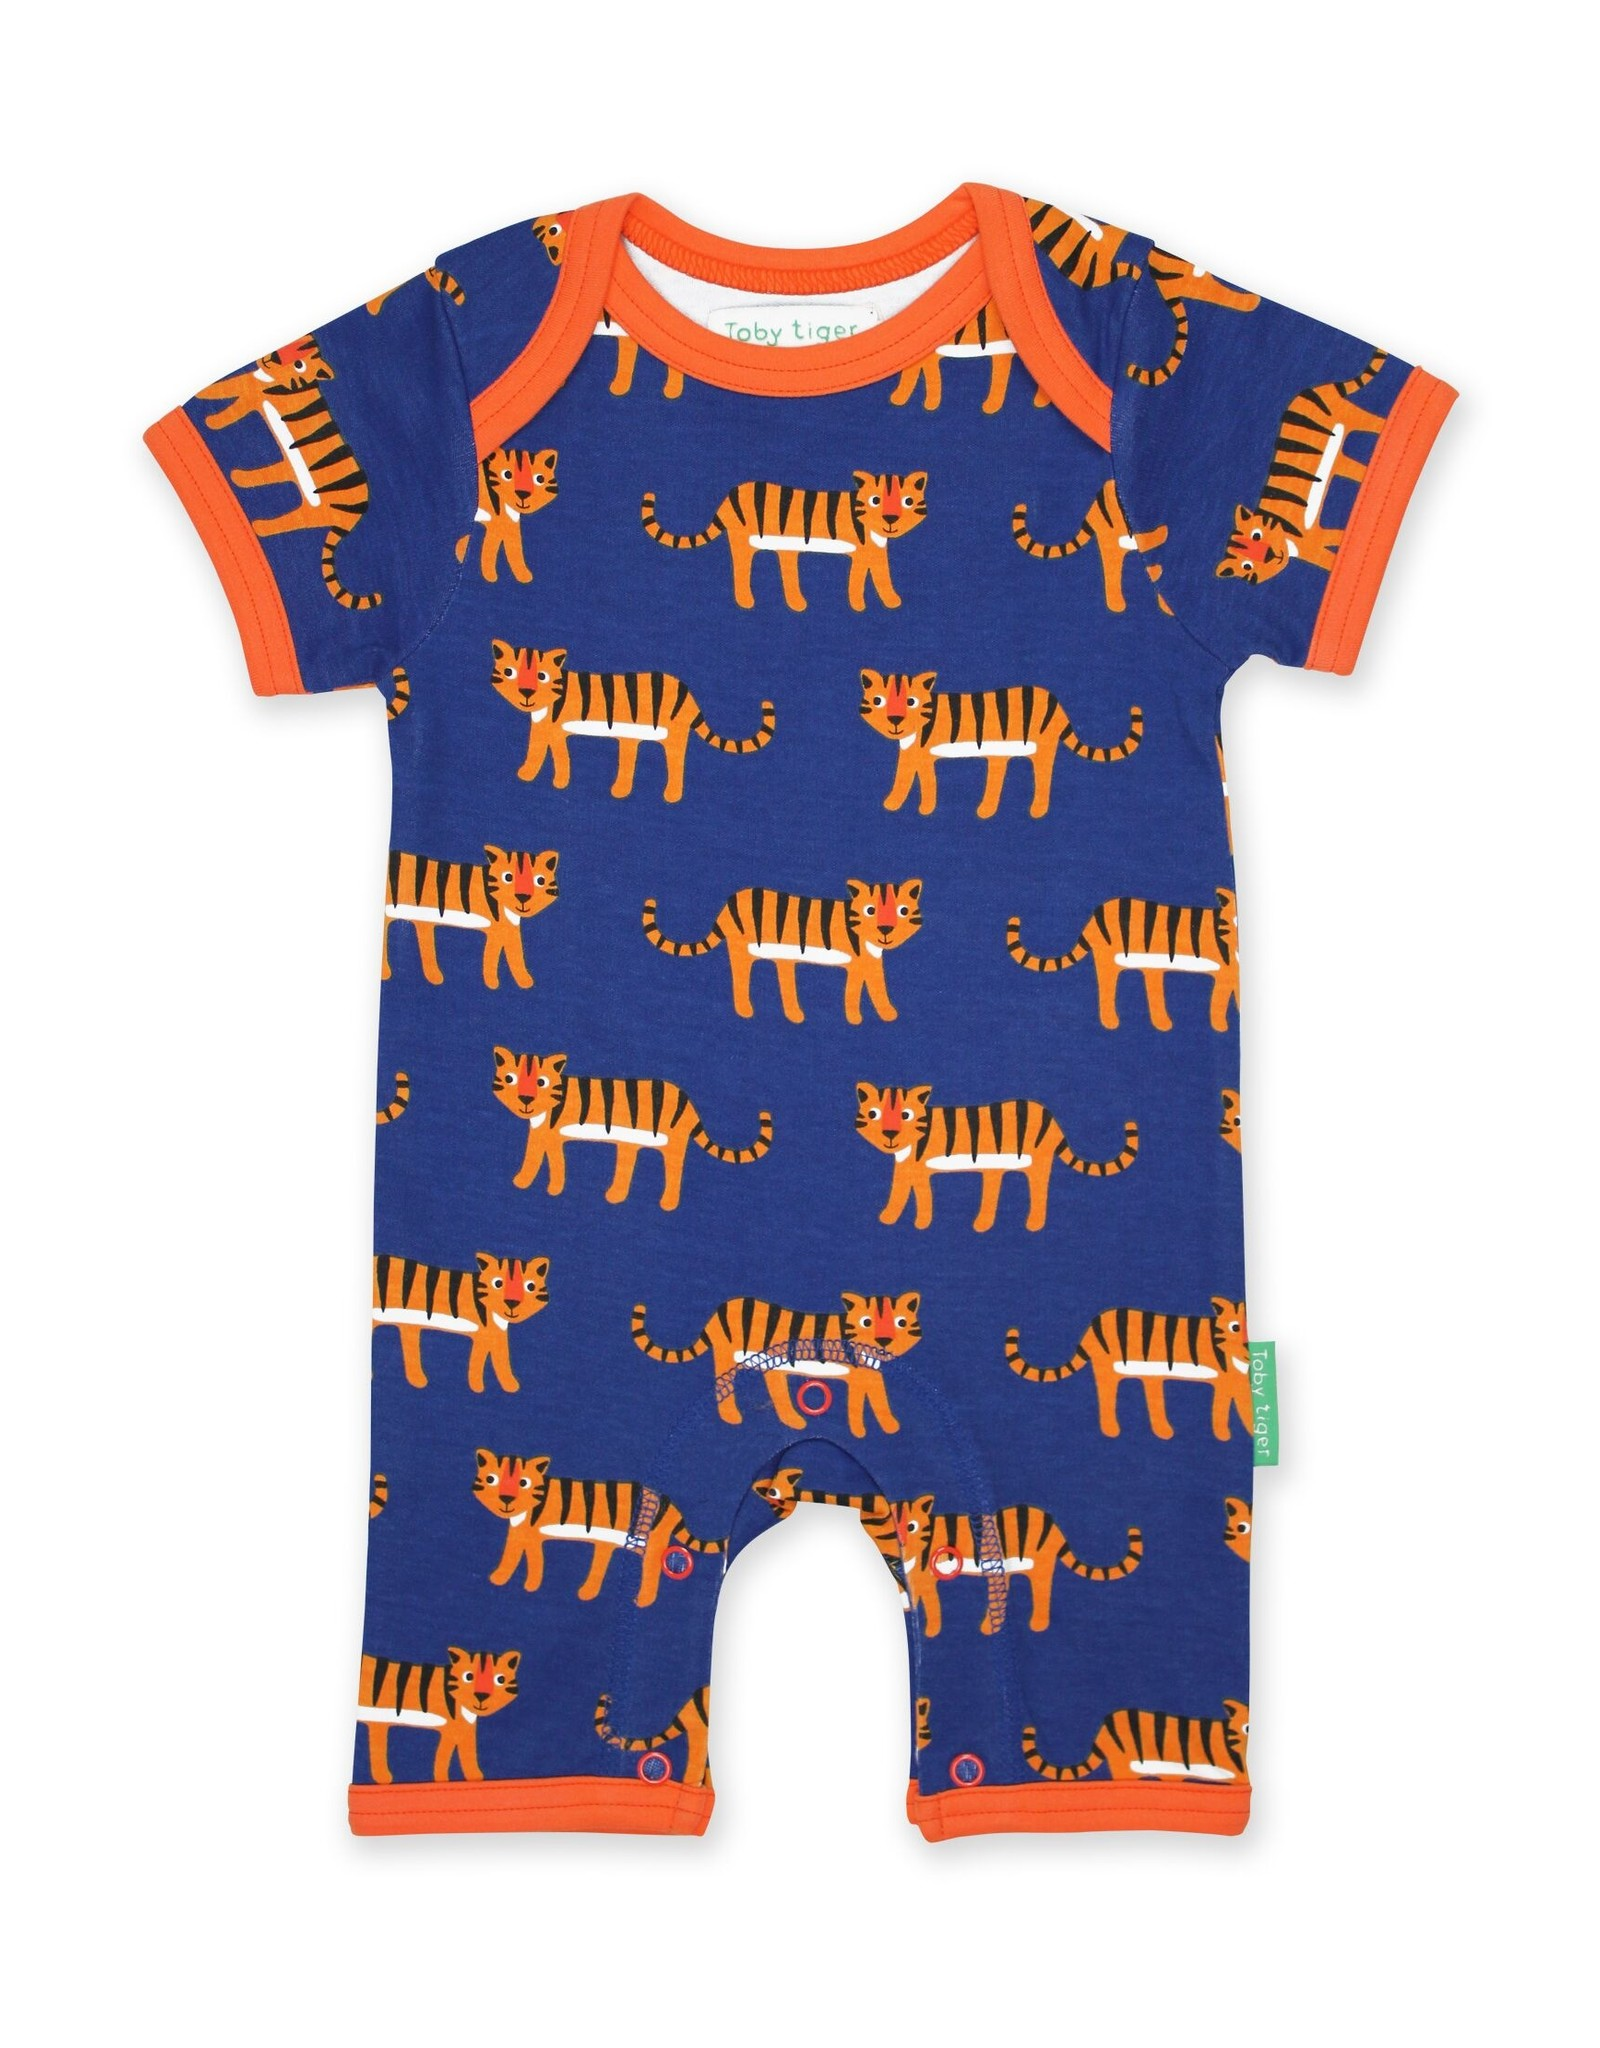 Toby Tiger Baby summersuit - tigers